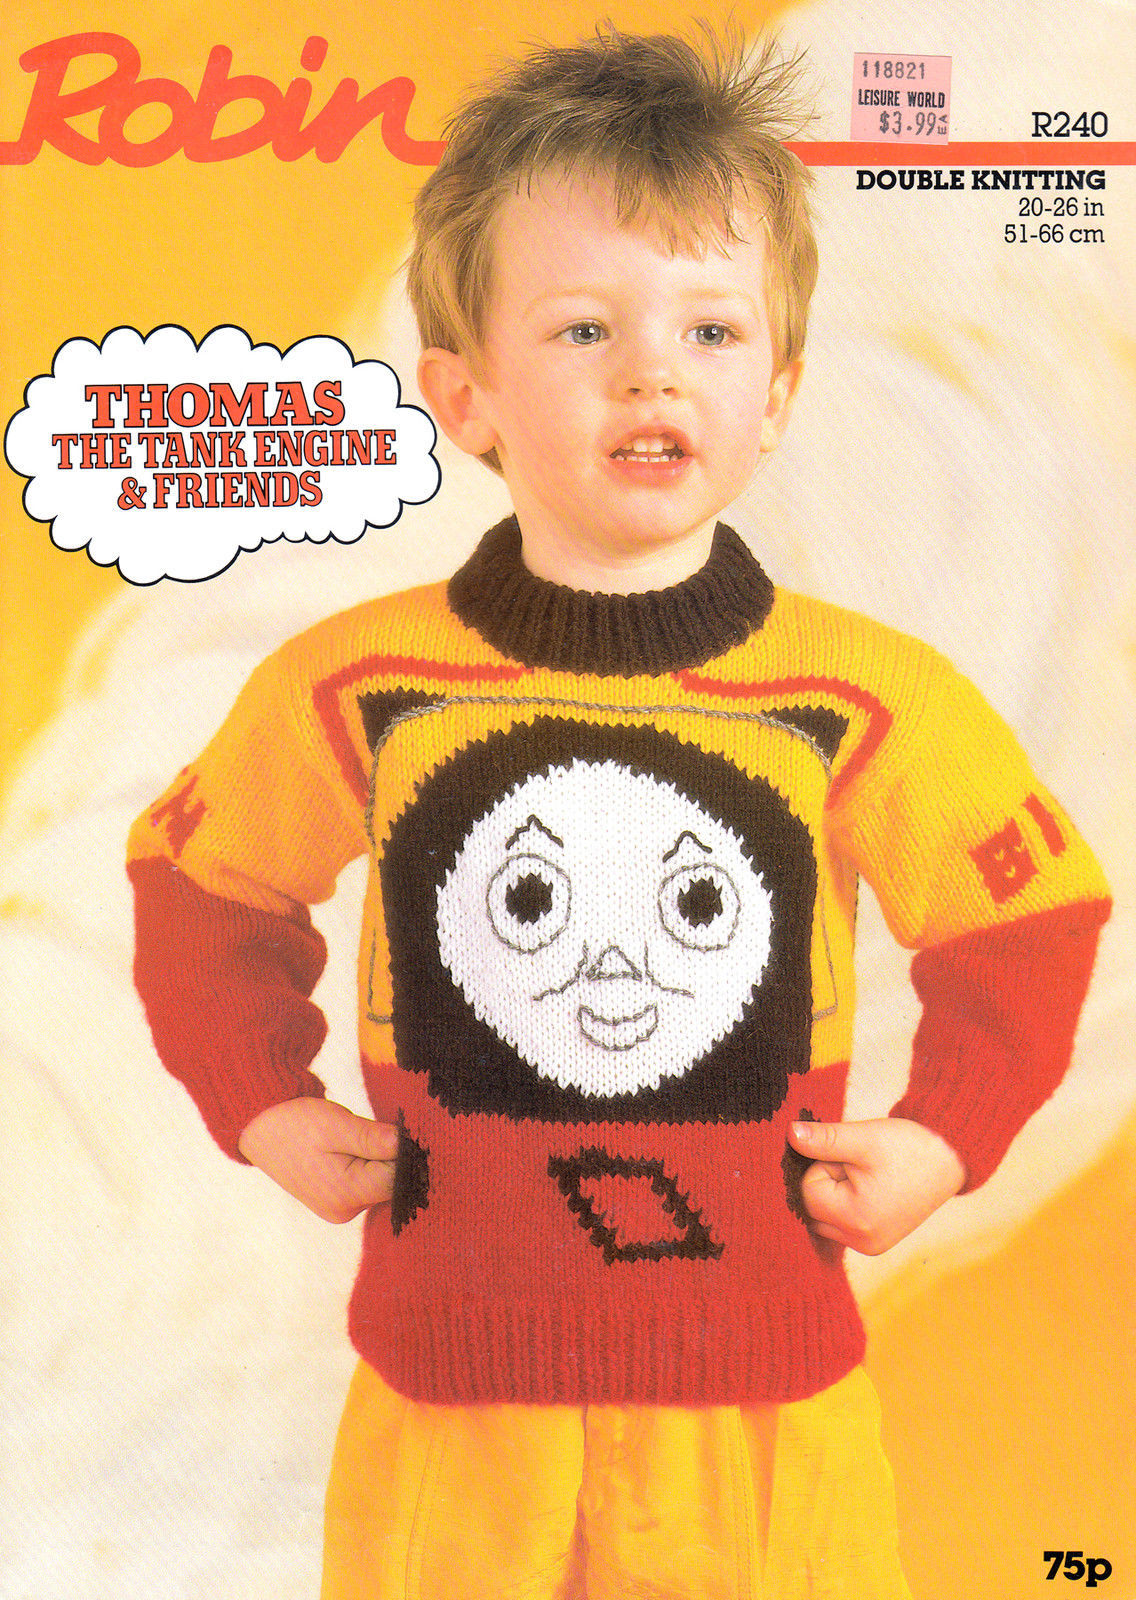 "Primary image for THOMAS TANK ENGINE & FRIENDS BEN & BILL 20 - 26"" SWEATER ROBIN 240 DK"